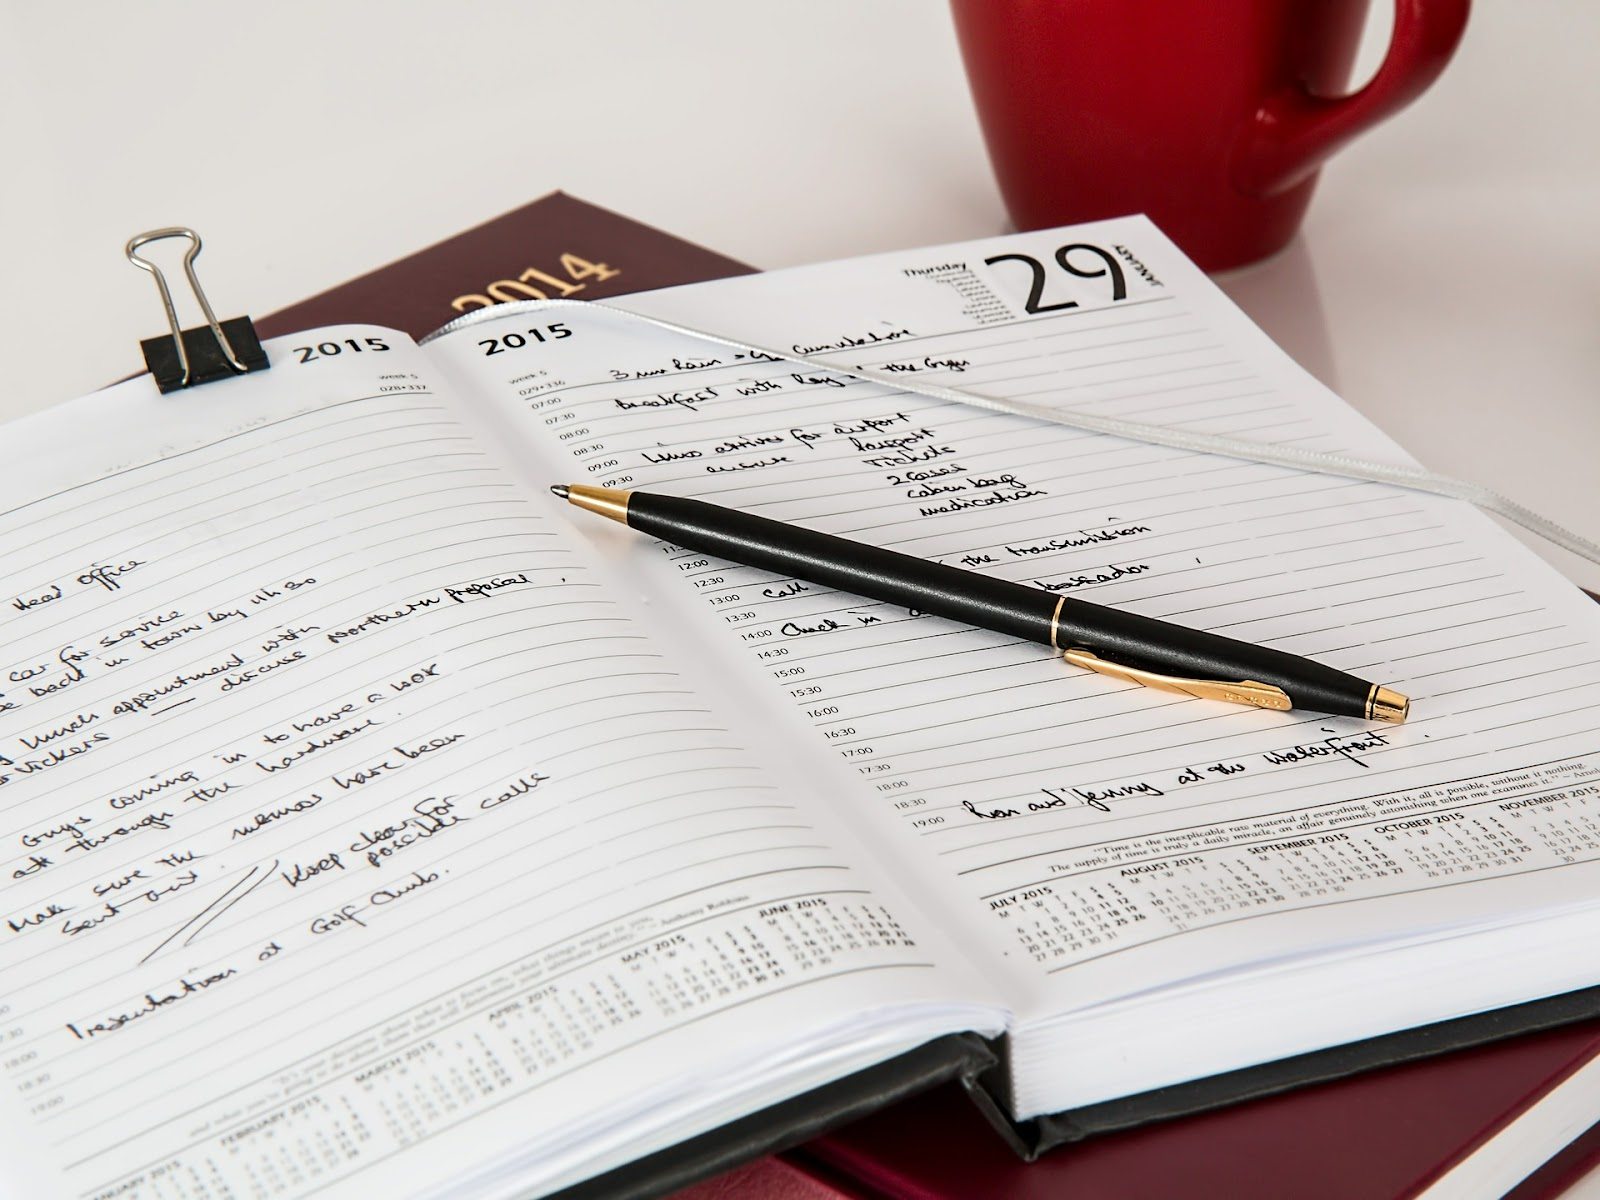 Paper agenda and pen schedule for bar exam study